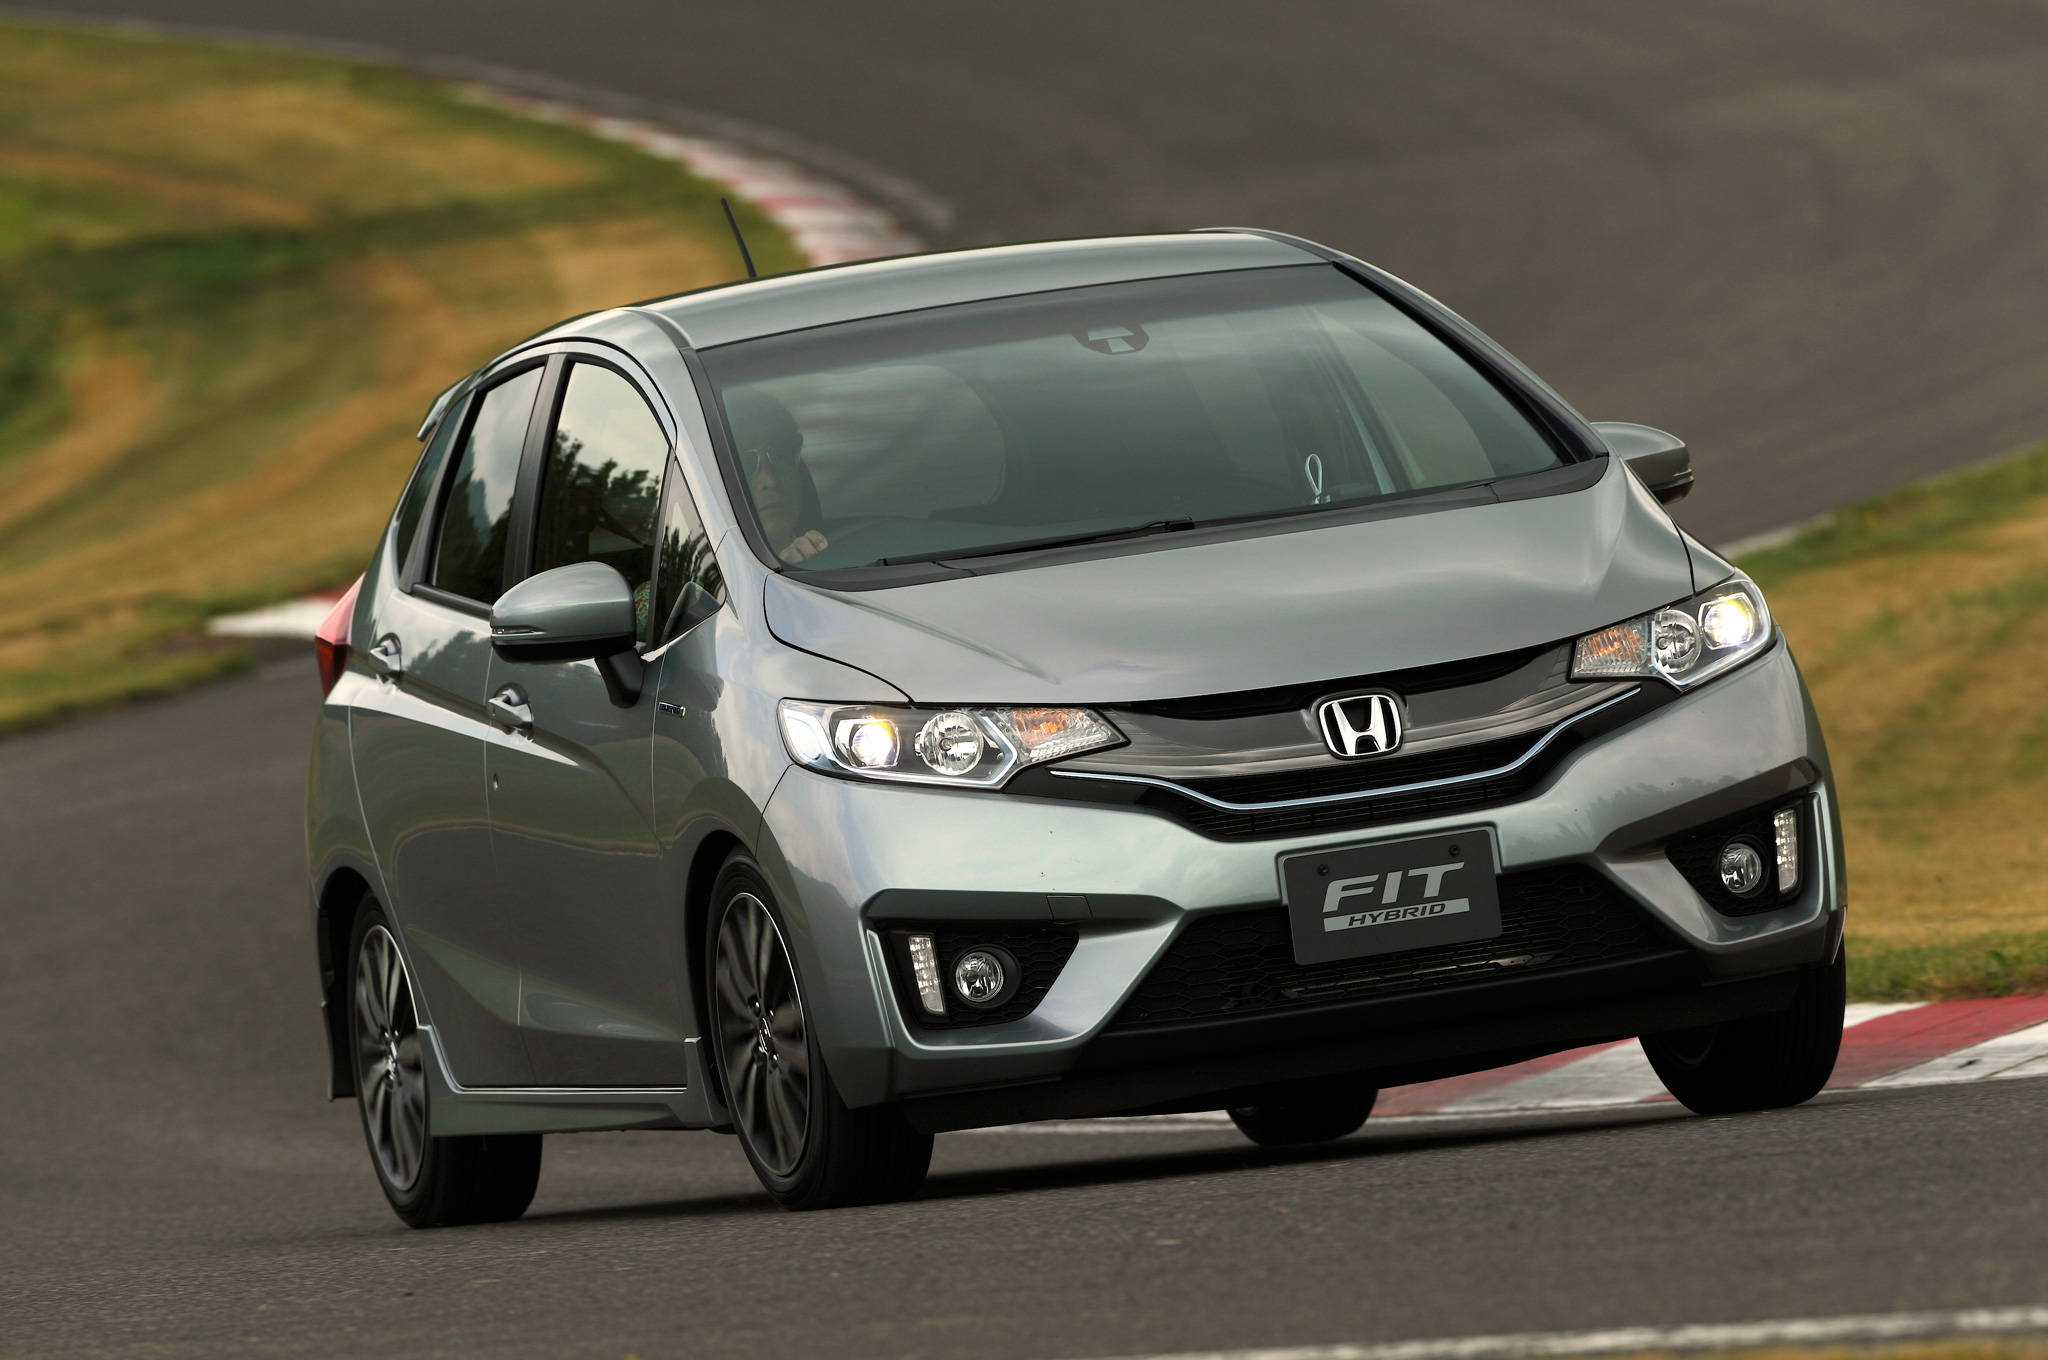 2014 honda jazz 2015 honda fit autoevolution. Black Bedroom Furniture Sets. Home Design Ideas